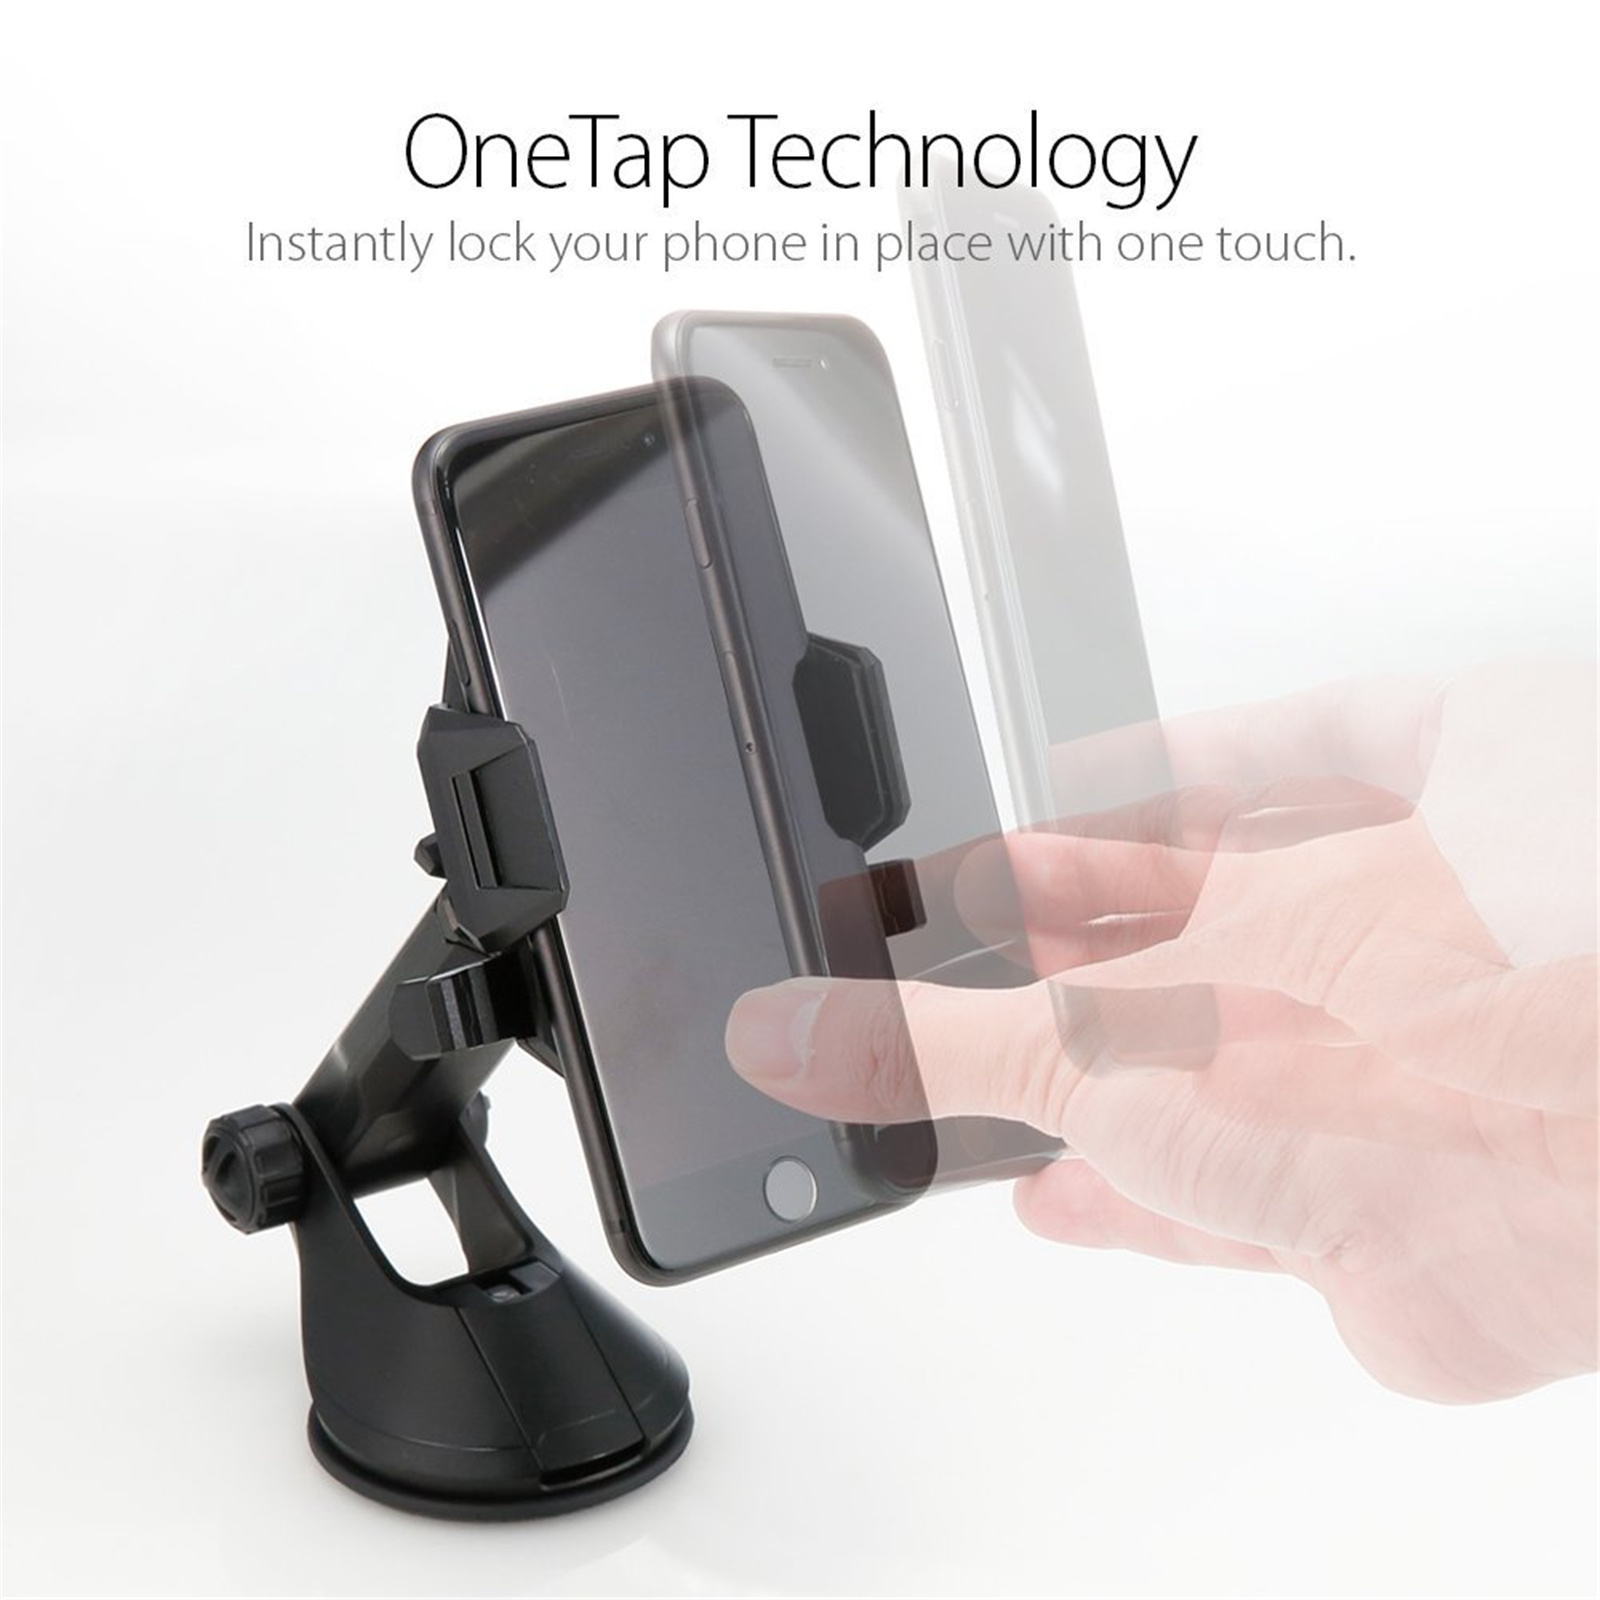 Spigen Ap12t Car Mount Holder 000cg20917 Daftar Harga Terkini Cradle Universal Kuel Turbulence S40 2 Iridium Silver Windscreen Dashboard Premium Phone Black One Tap Mounting